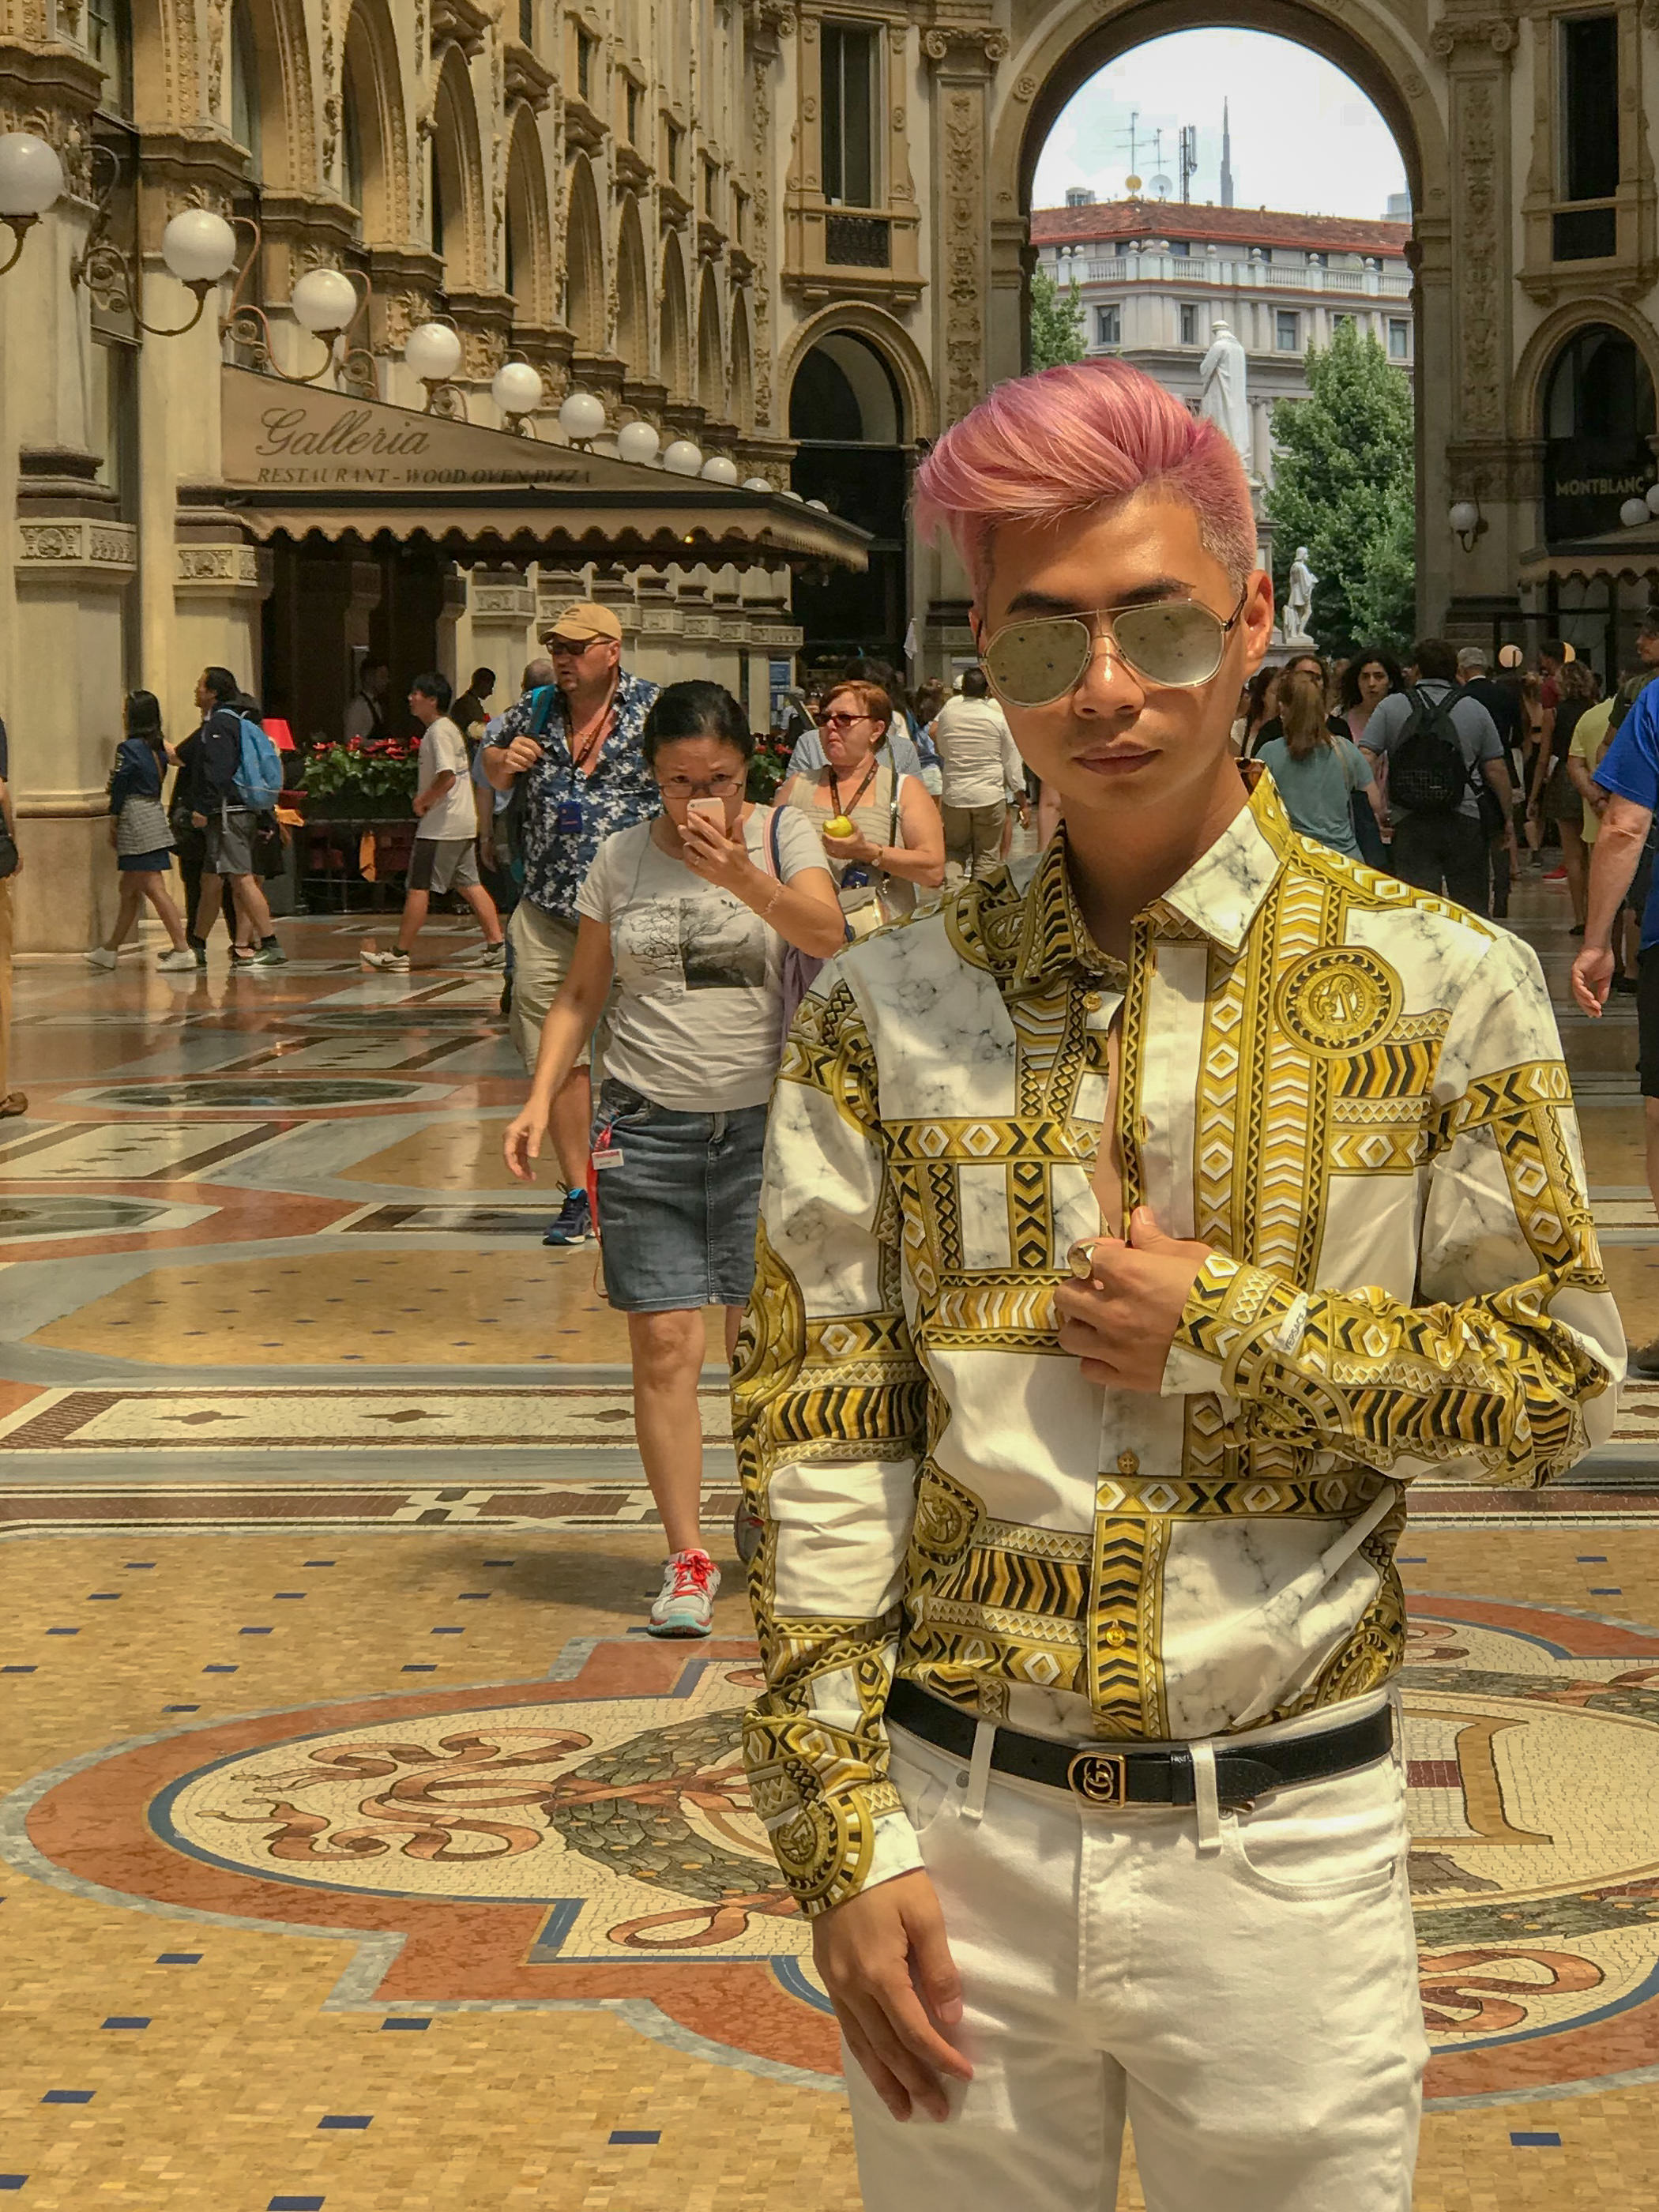 MYBELONGING-TOMMYLEI-TOP-MENS-BLOGGER-INFLUENCER-CREATIVE-AT-THE-DUOMO-MILAN-TRAVEL-PHOTOGRAPHY-VERSACE-GUCCI-PRADA-STREETSTYLE16.jpg